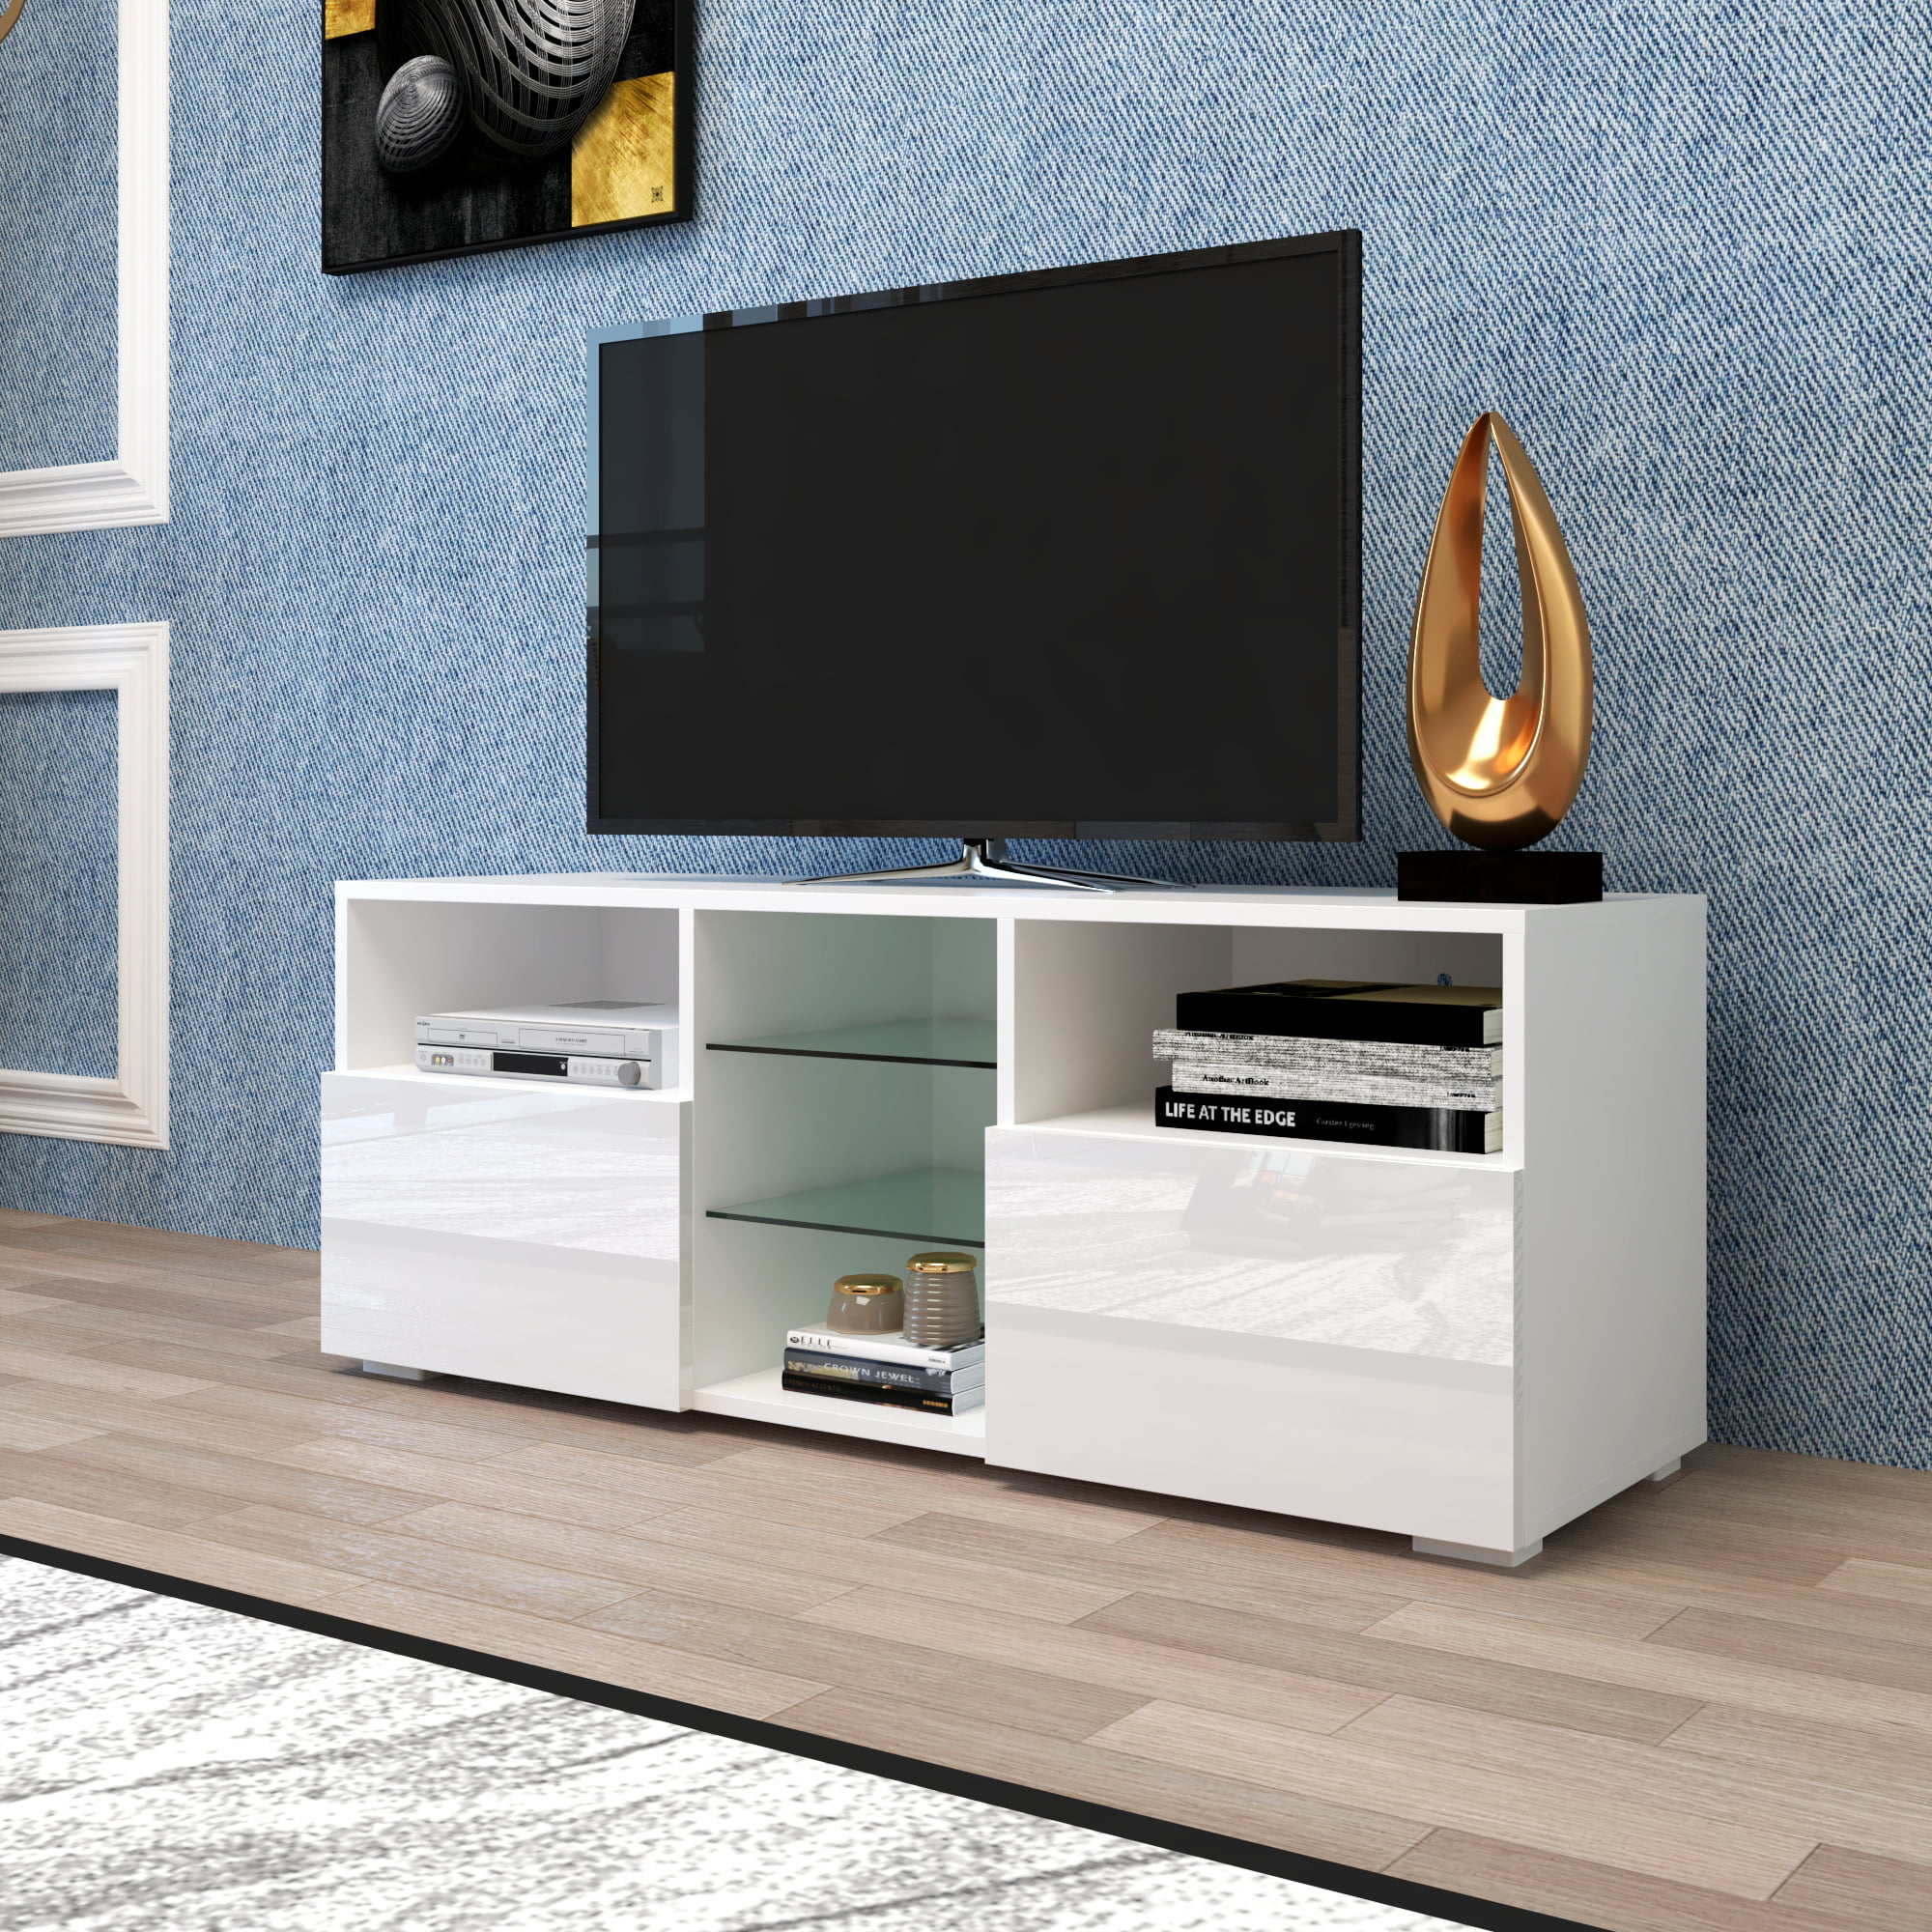 White Tv Stand For Living Room 12 Colors Led Tv Stand With Remote Control Lights Modern High Gloss Tv Cabinet With Storage And 2 Cabinets Media Console Cabinet Tv Stand For Living